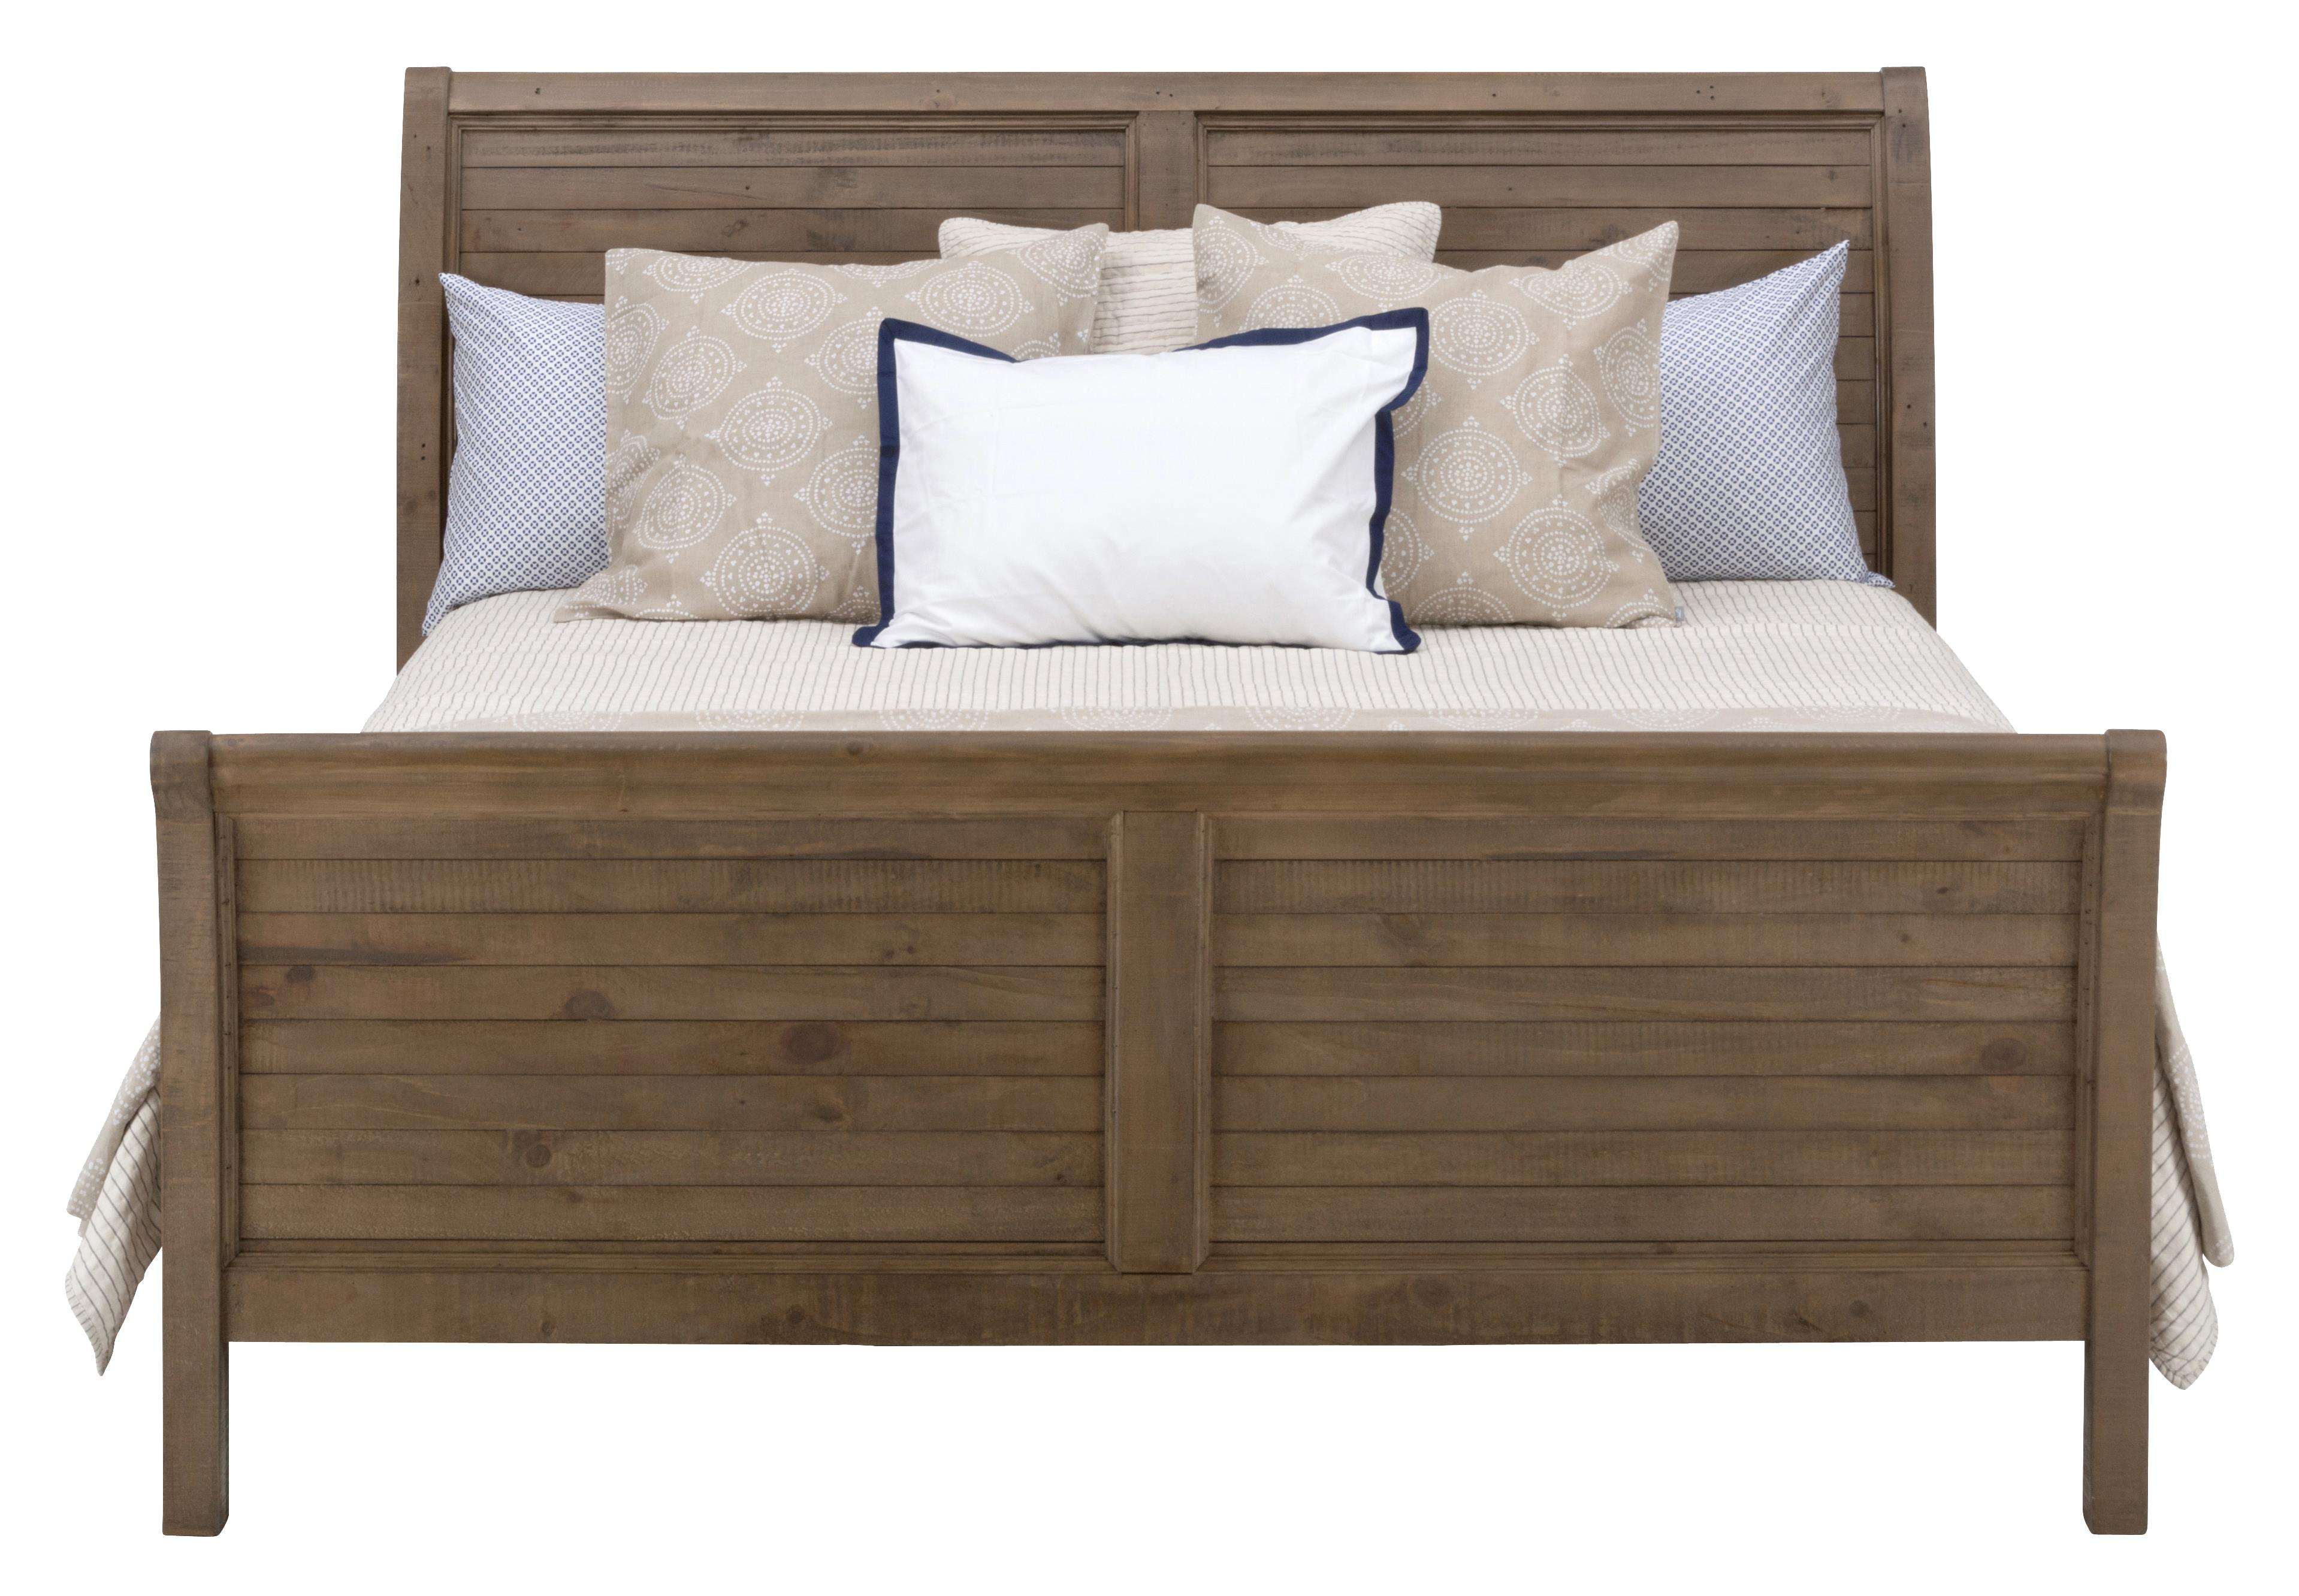 Jofran Slater Mill Pine King Sleigh Bed - Item Number: 943-95+96+97